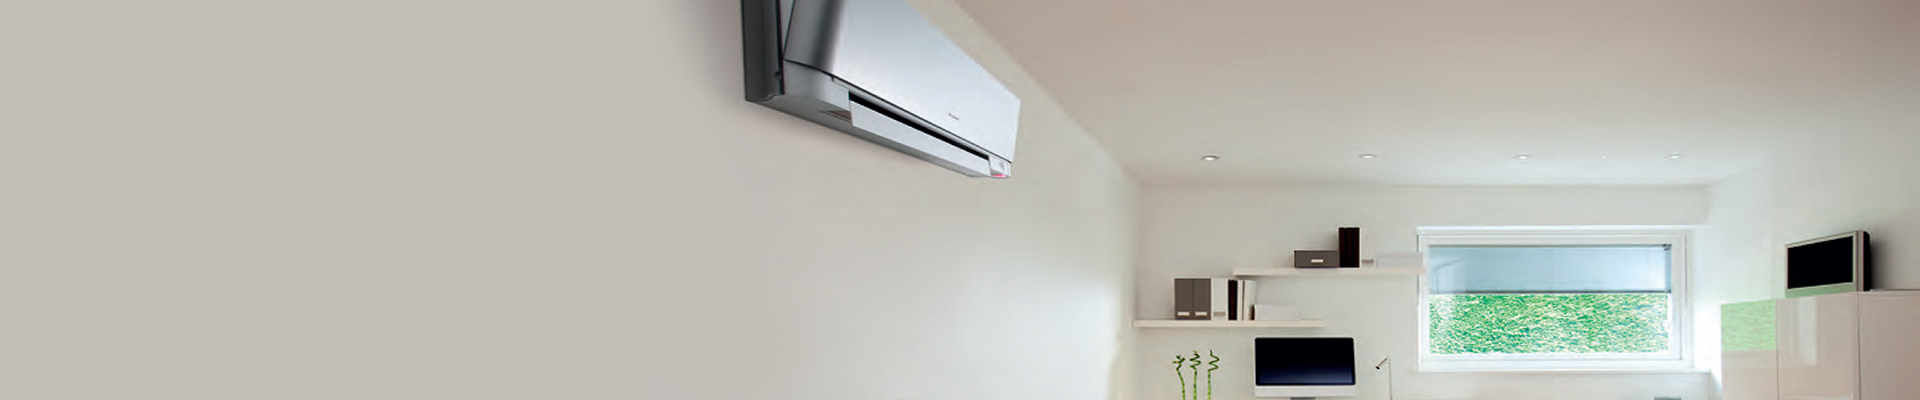 AC Dealer In Trichy